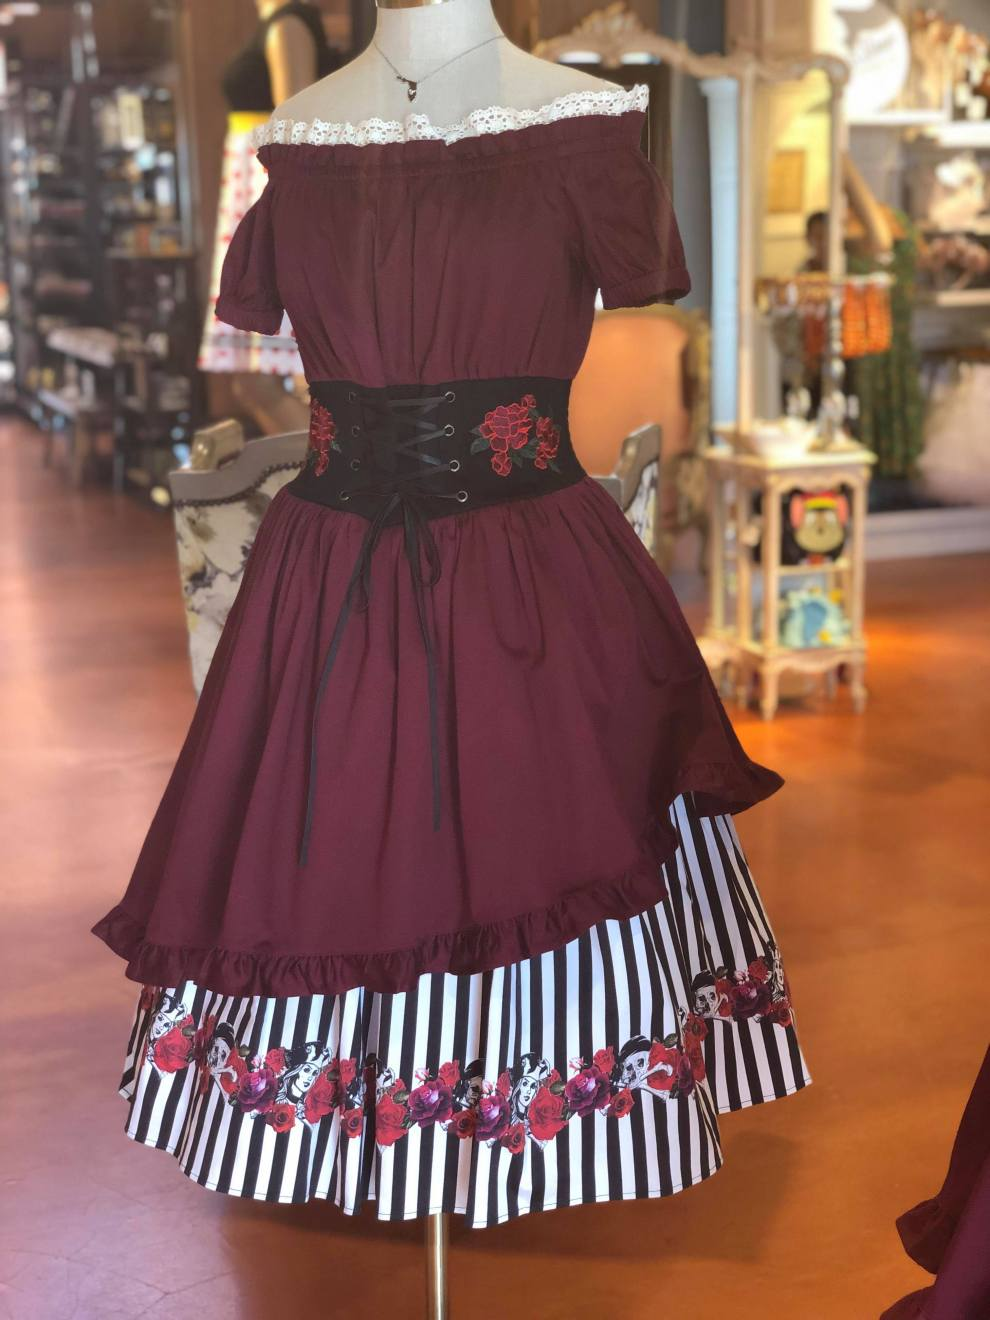 Pirates Of The Caribbean Dress Inspired By Redd Now At The Dress Shop